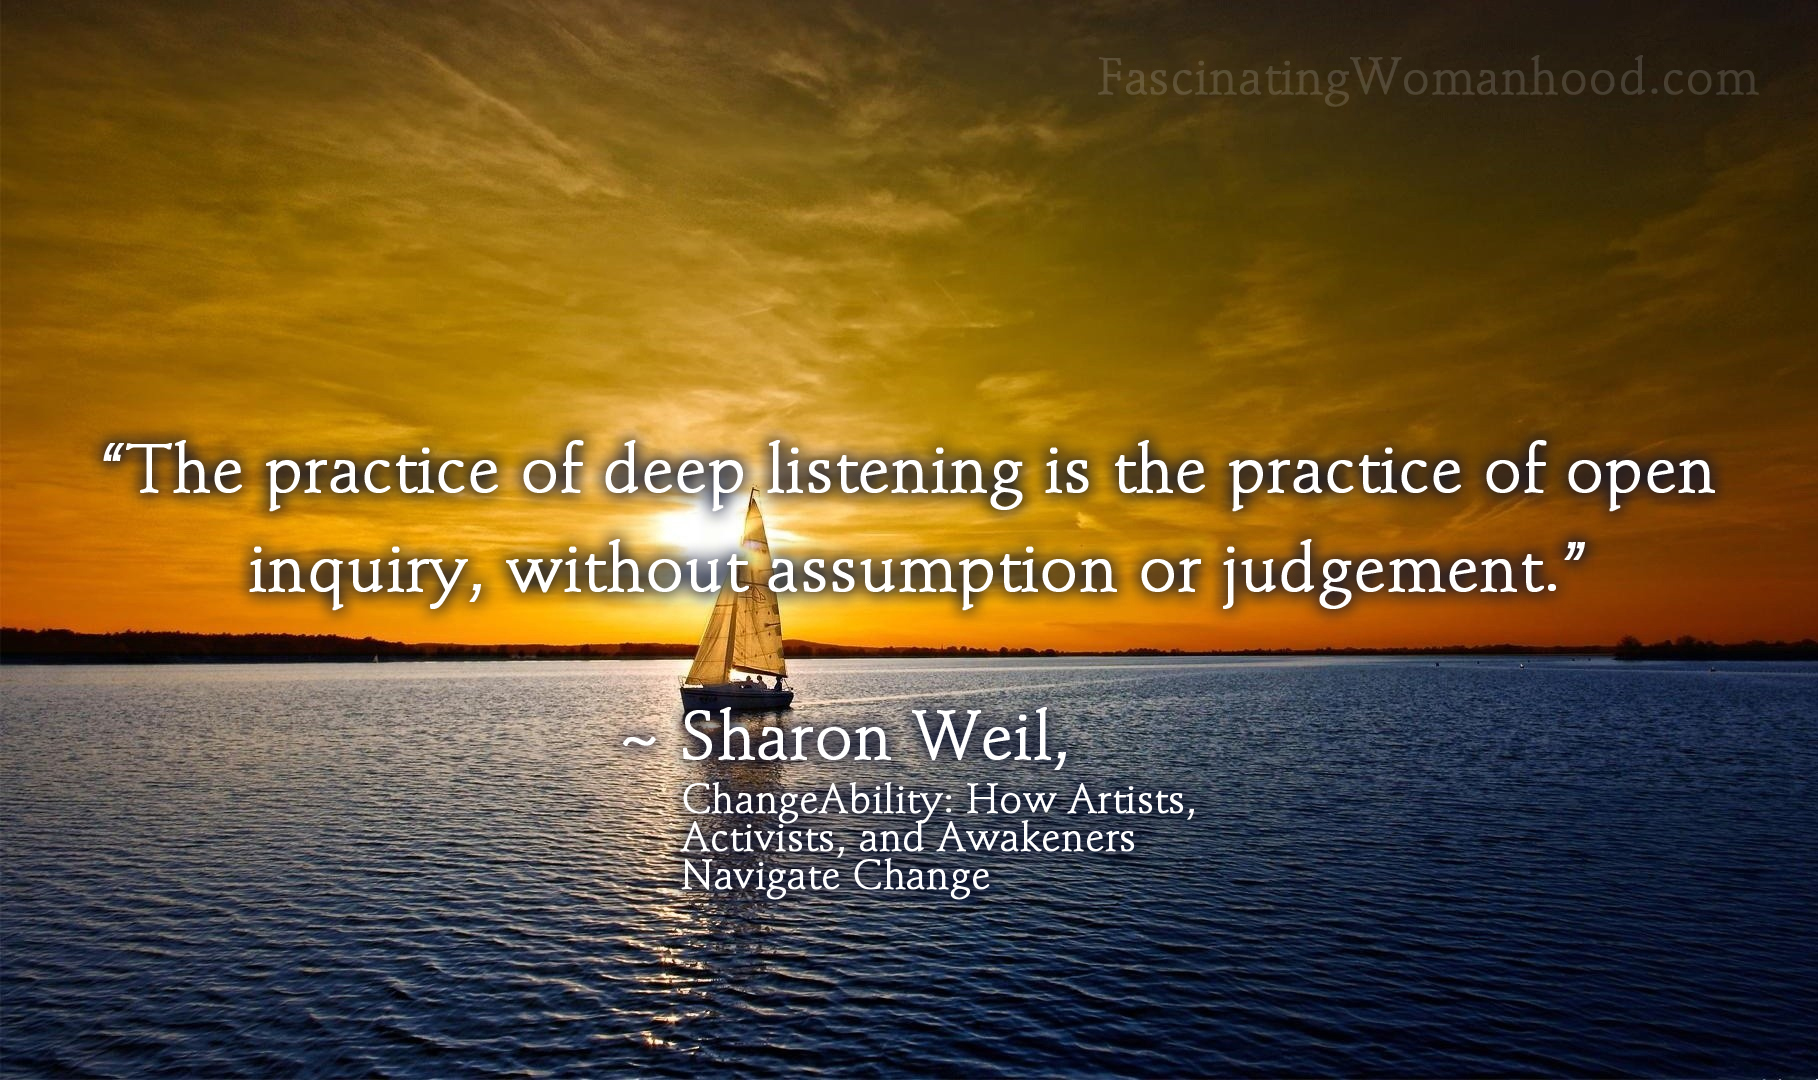 A Quote by Sharon Weil.jpg